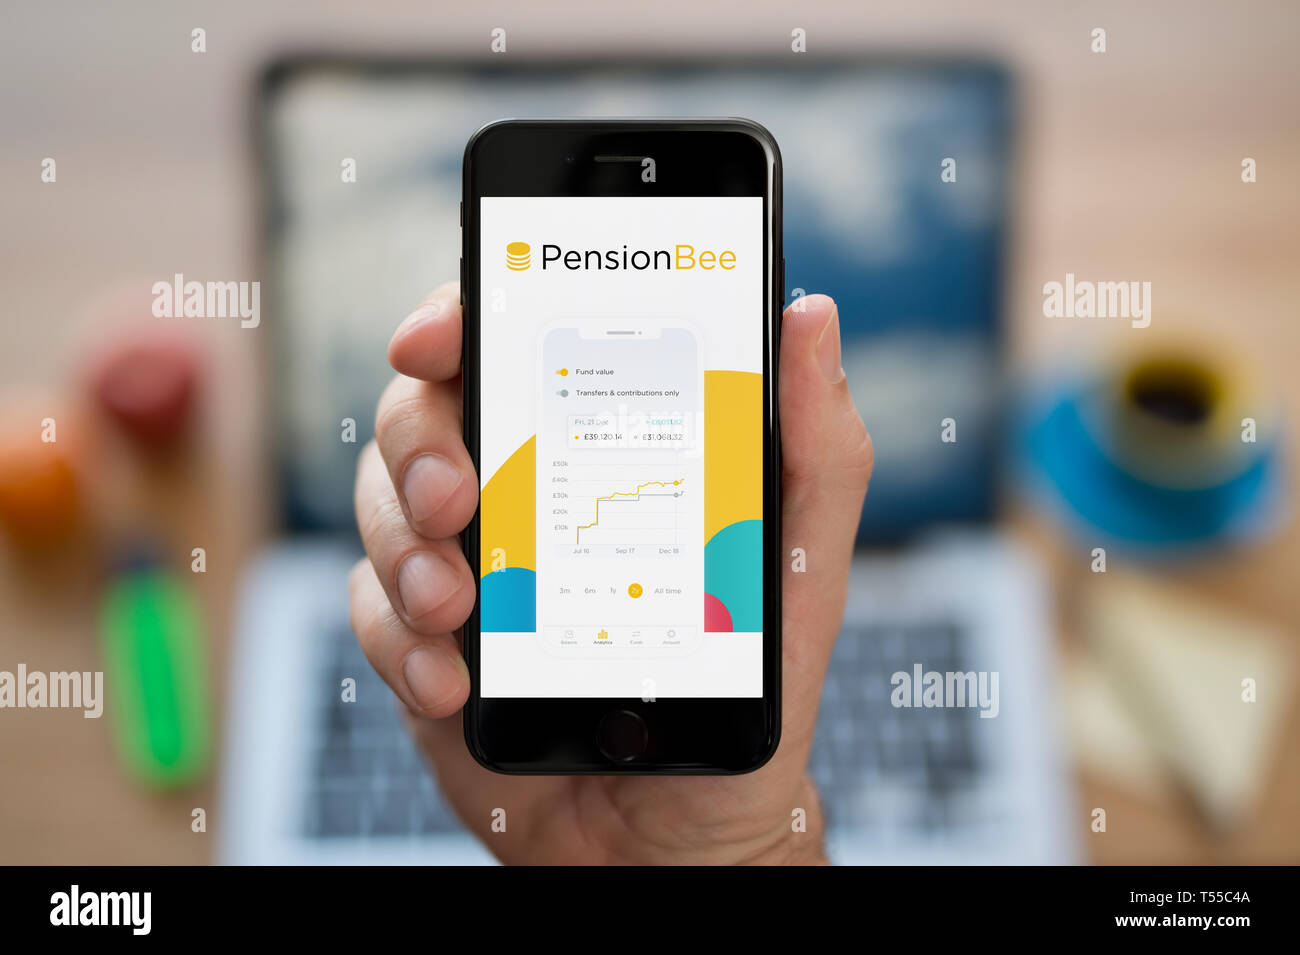 A man looks at his iPhone which displays the Pension Bee logo (Editorial use only). - Stock Image